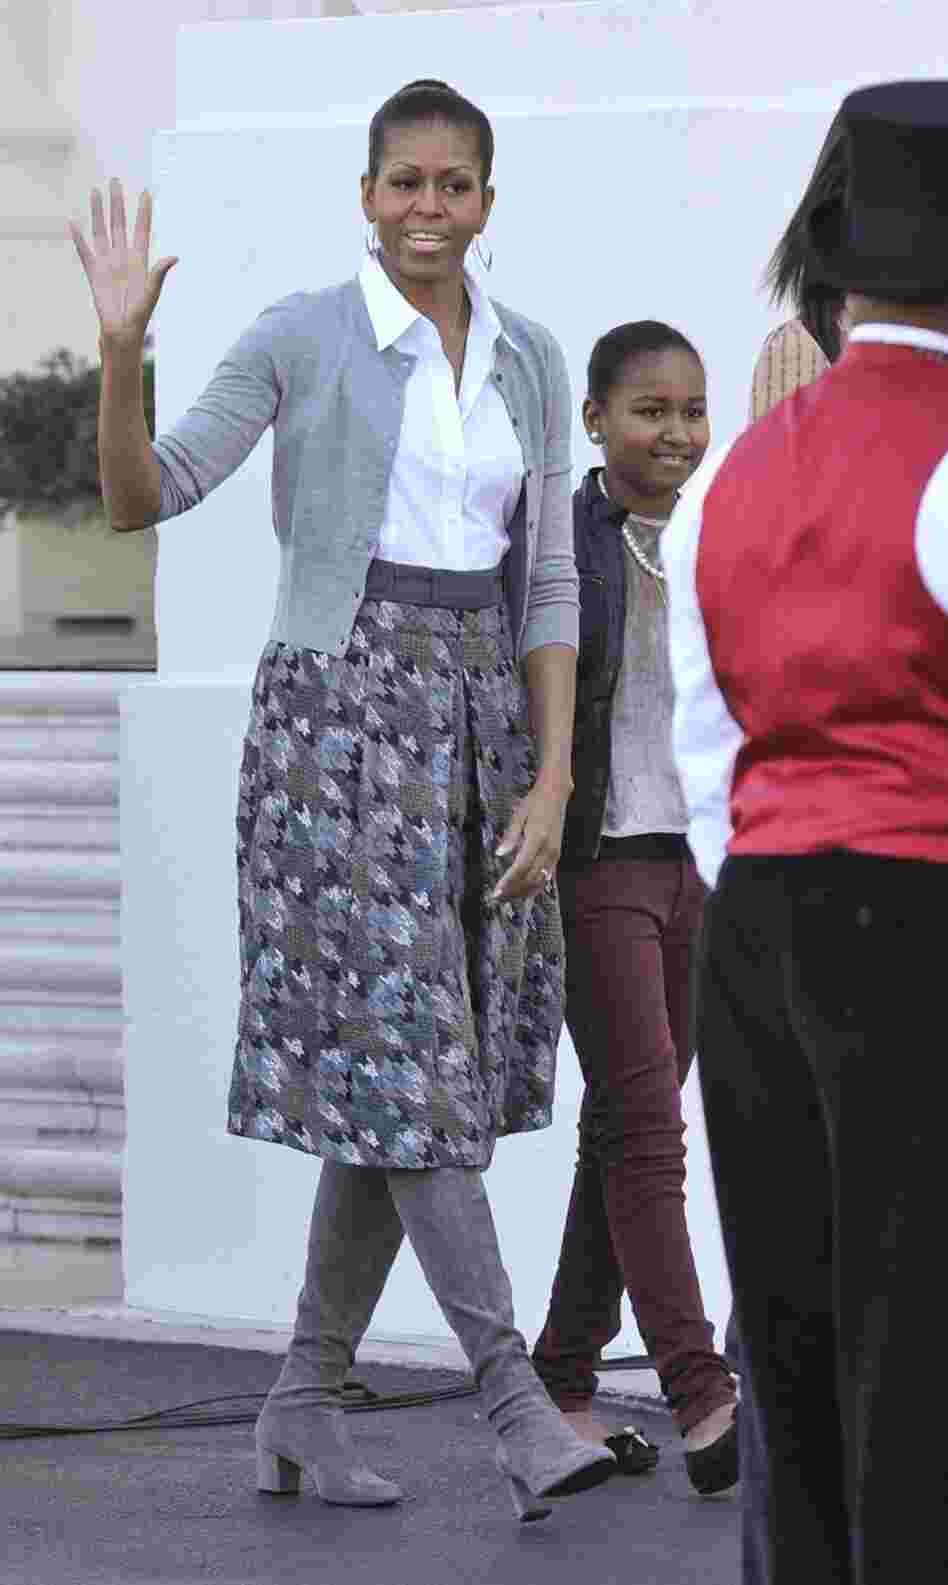 Michelle Obama shows off a gray outfit with a simple cardigan and a houndstooth skirt.